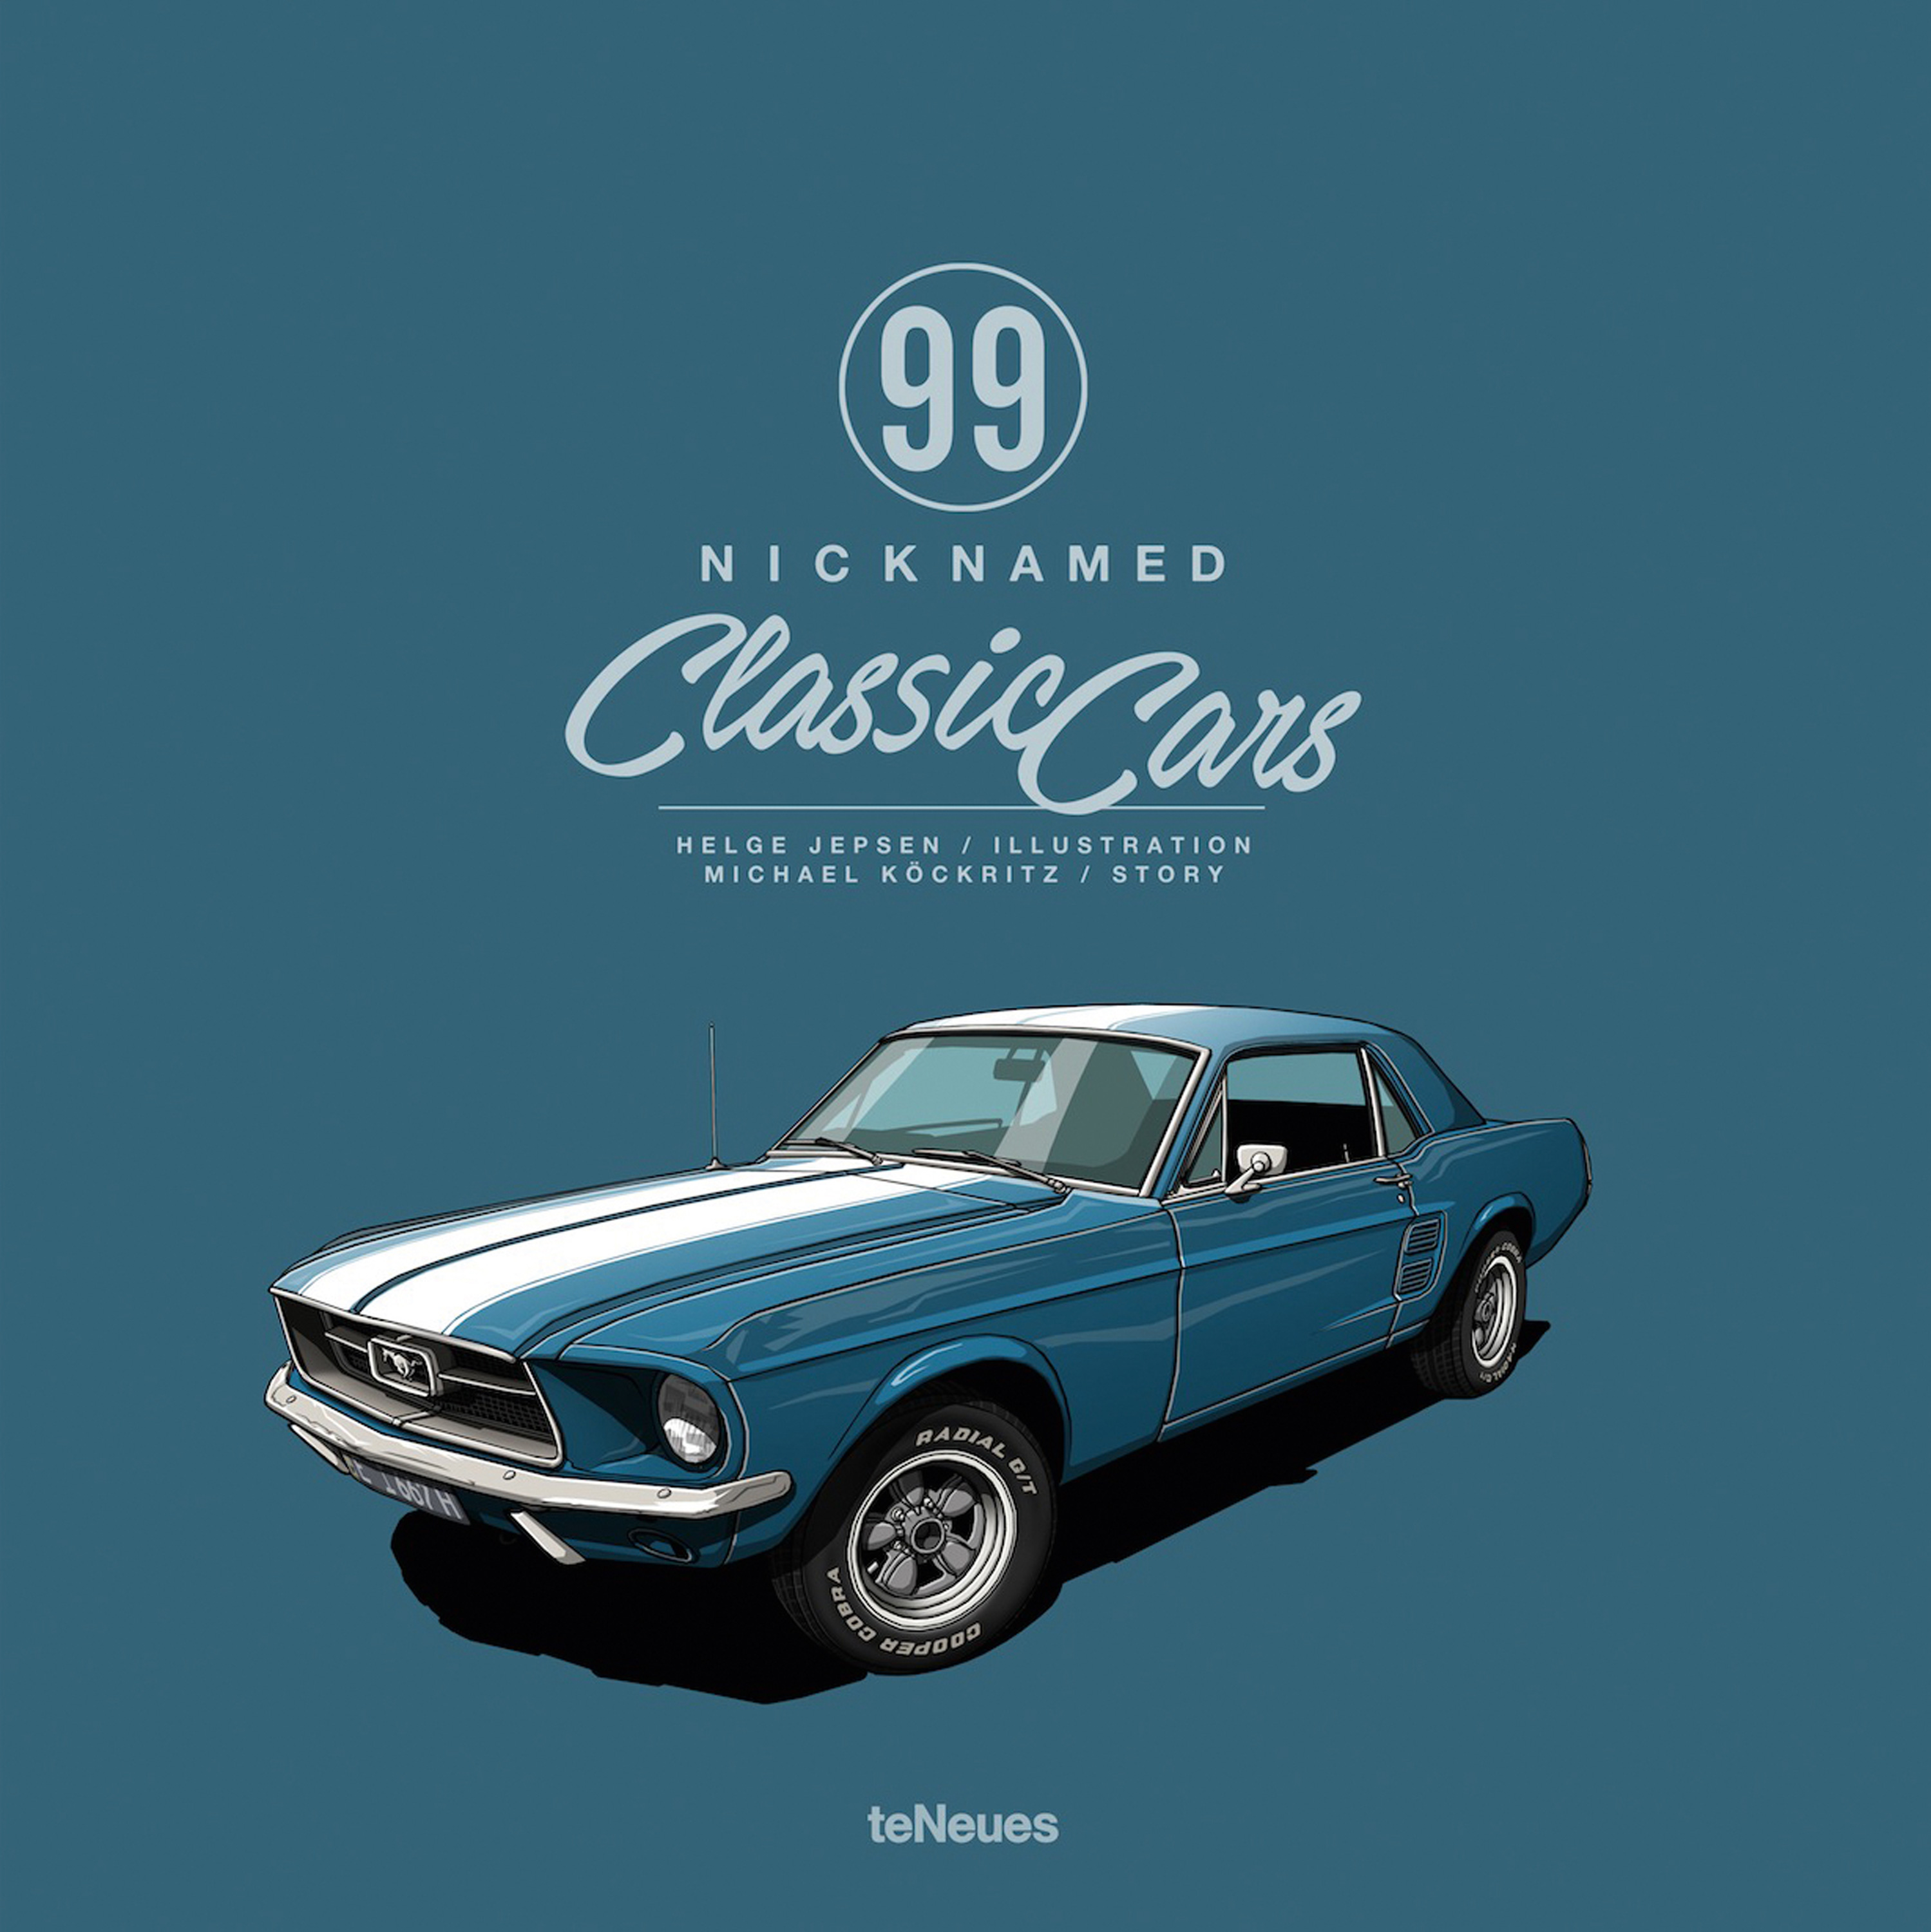 Nicknamed Classic Cars Mendo